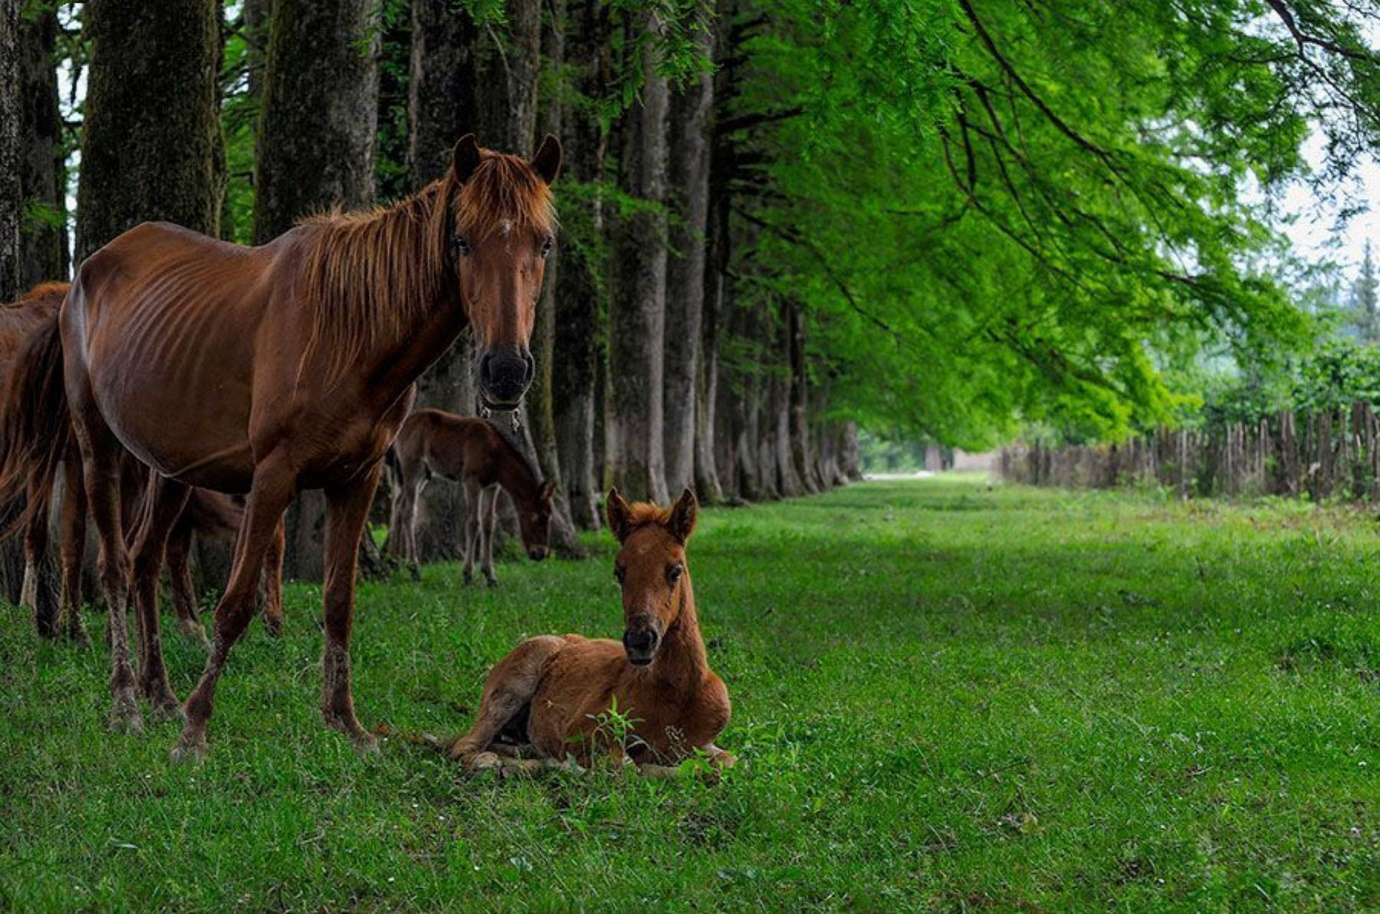 A brown horse standing on top of a grass covered field Description automatically generated